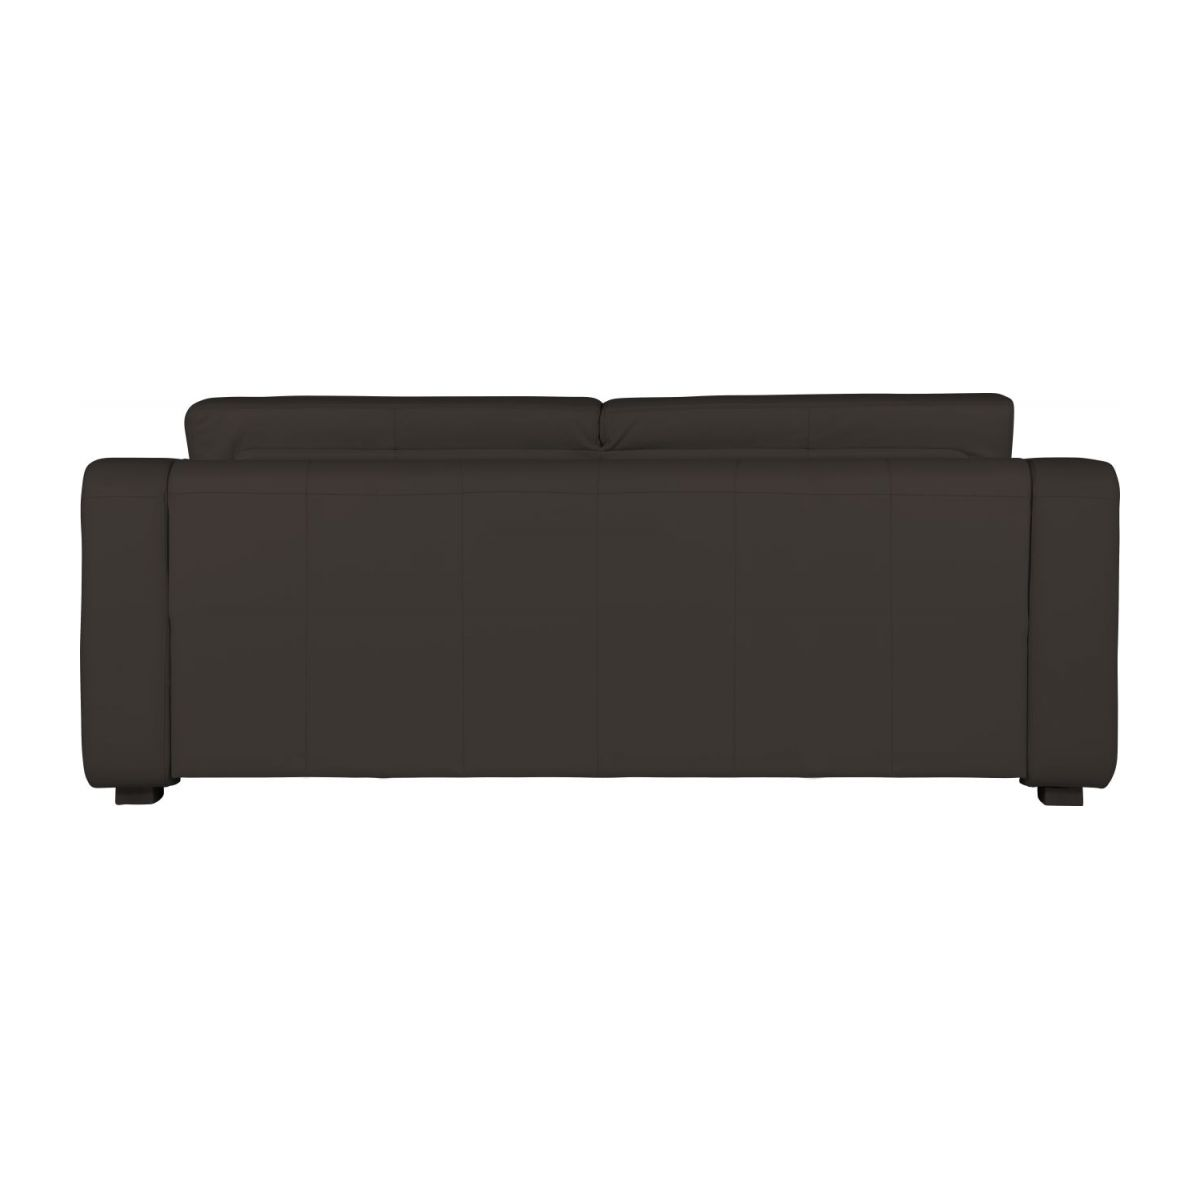 3-person leather sofa n°5